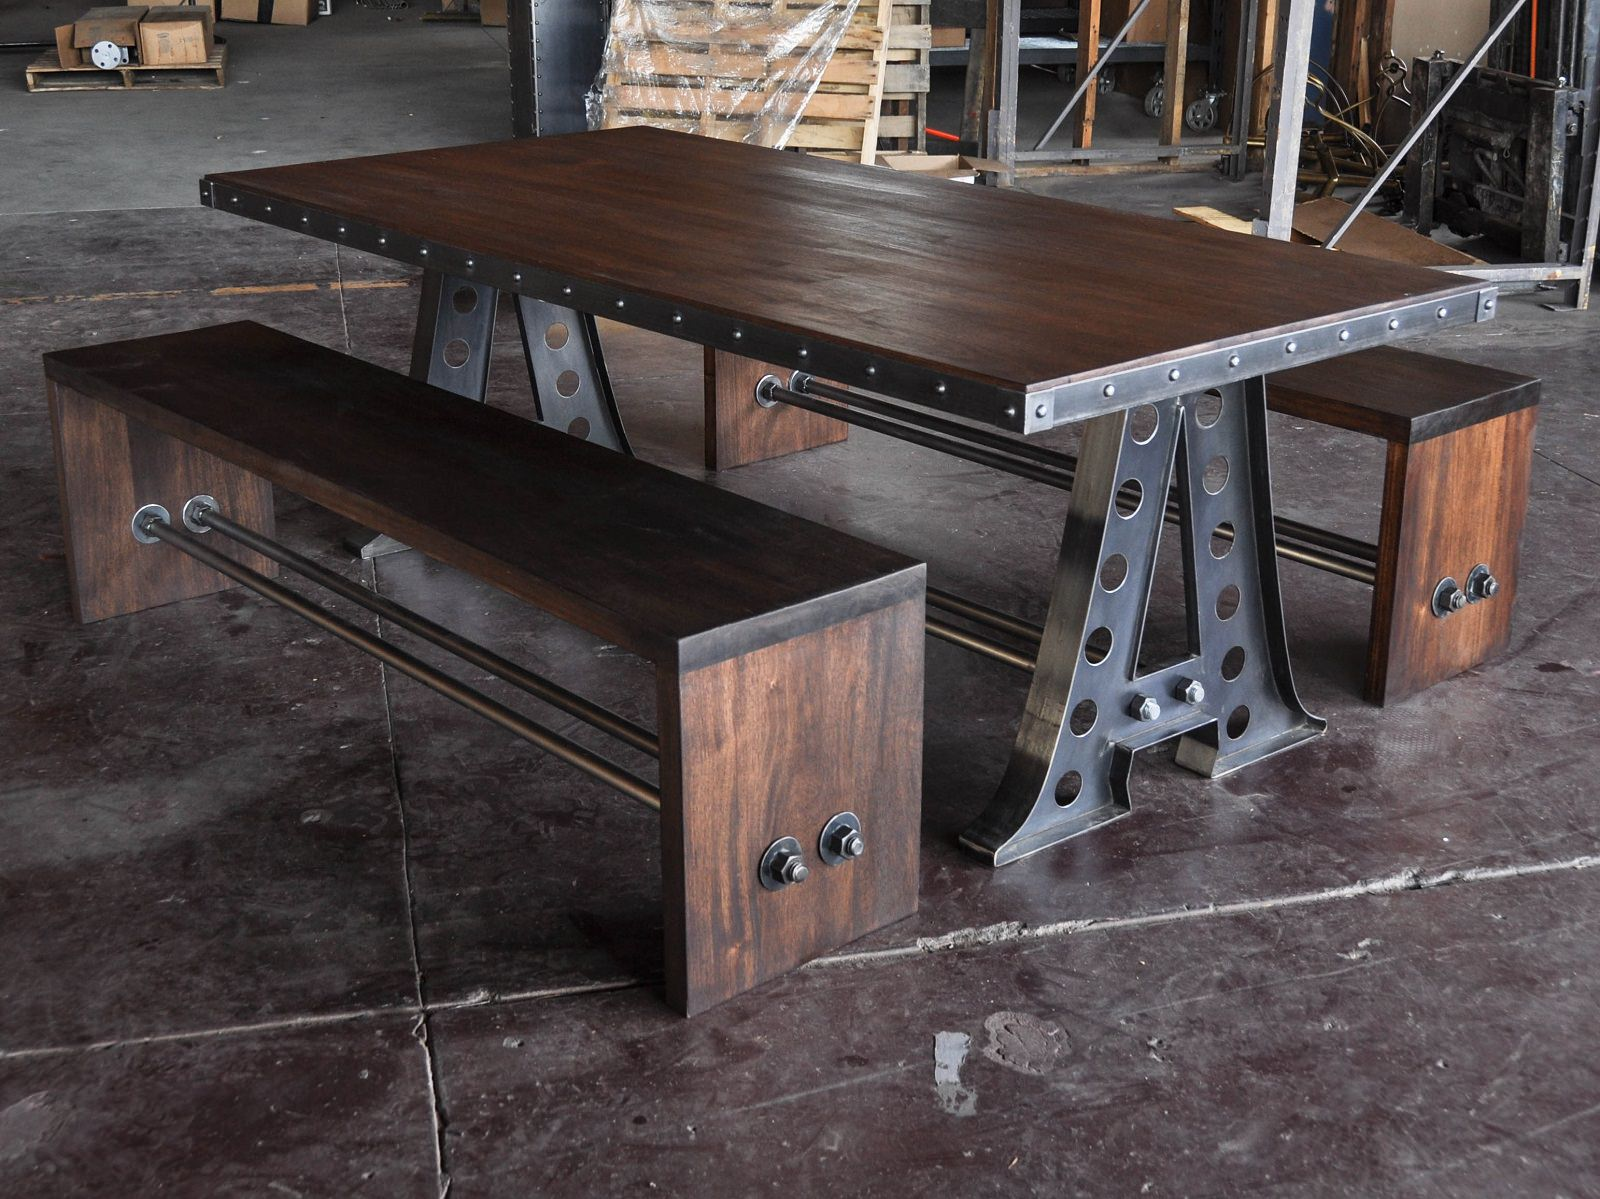 Benches Dining Table: Vintage Industrial Furniture